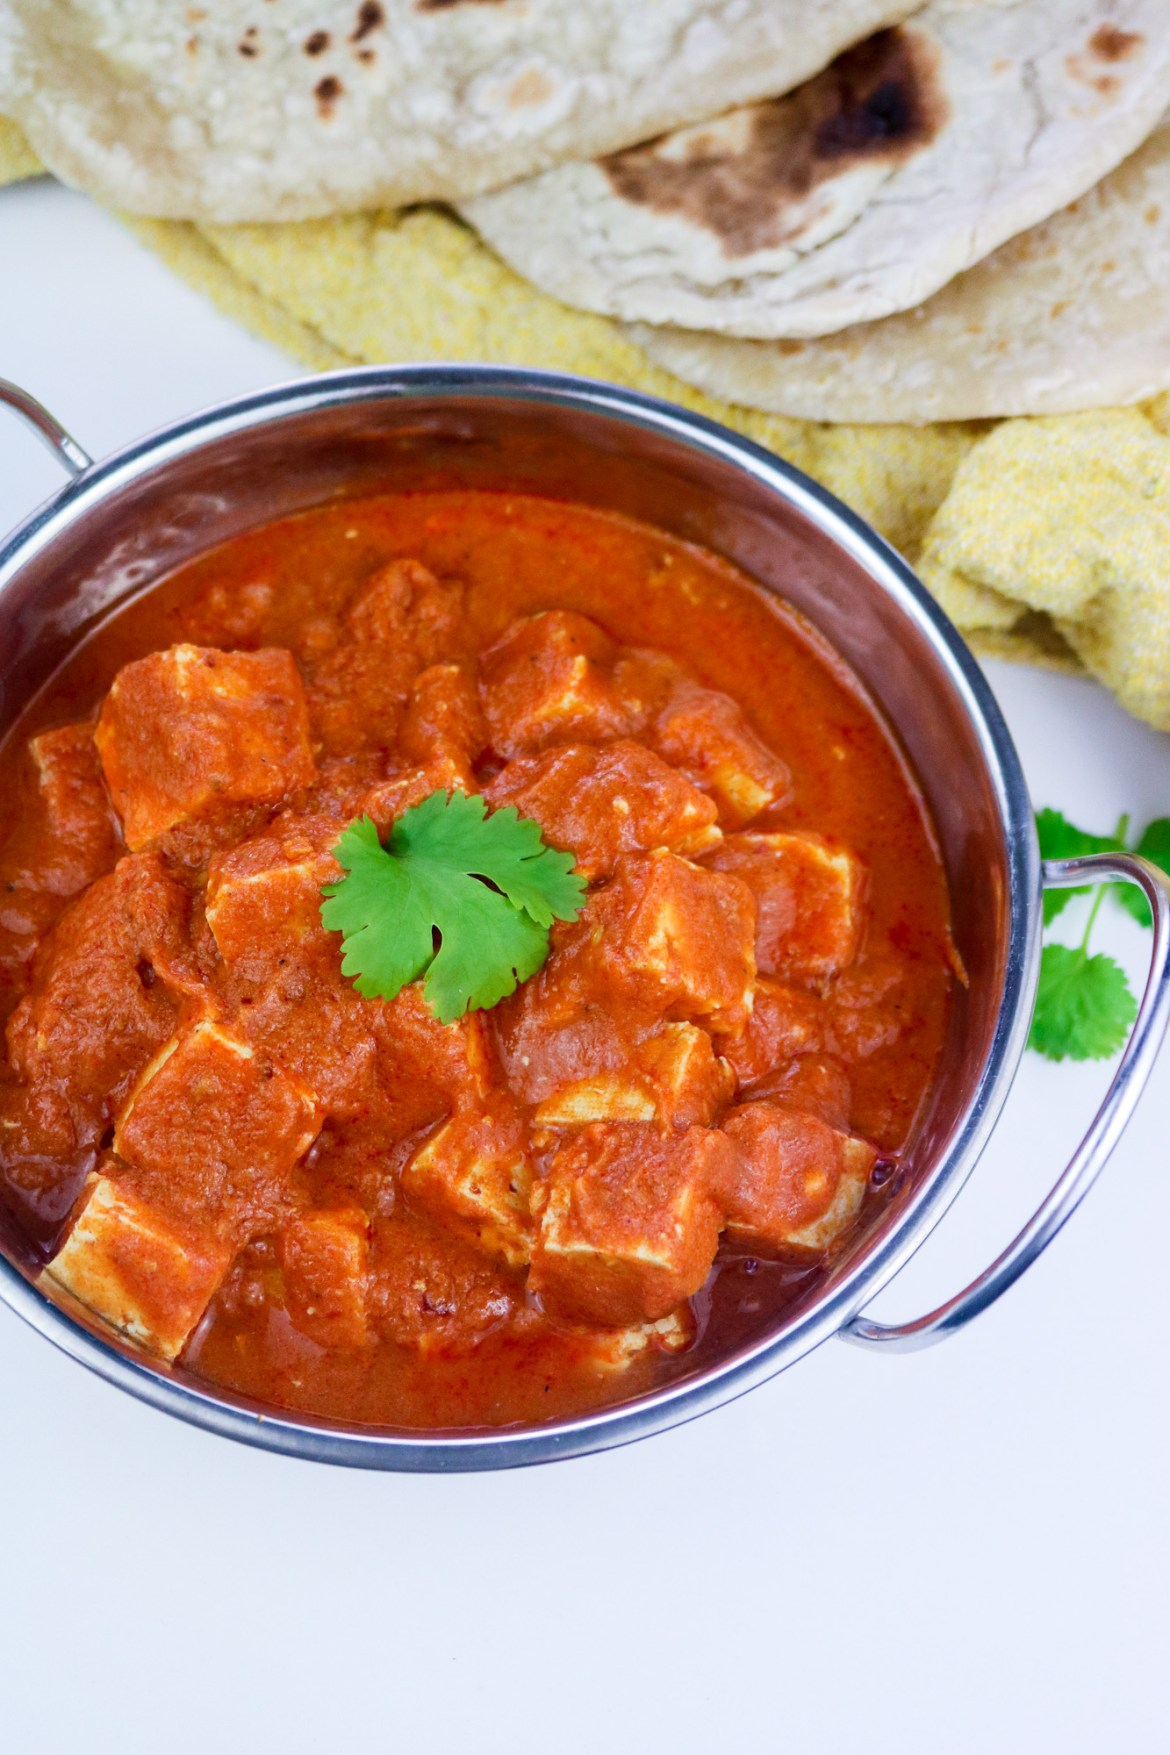 tofu cubes in makhani sauce served into an Indian-style dish decorated fresh coriander leaves and naan bread